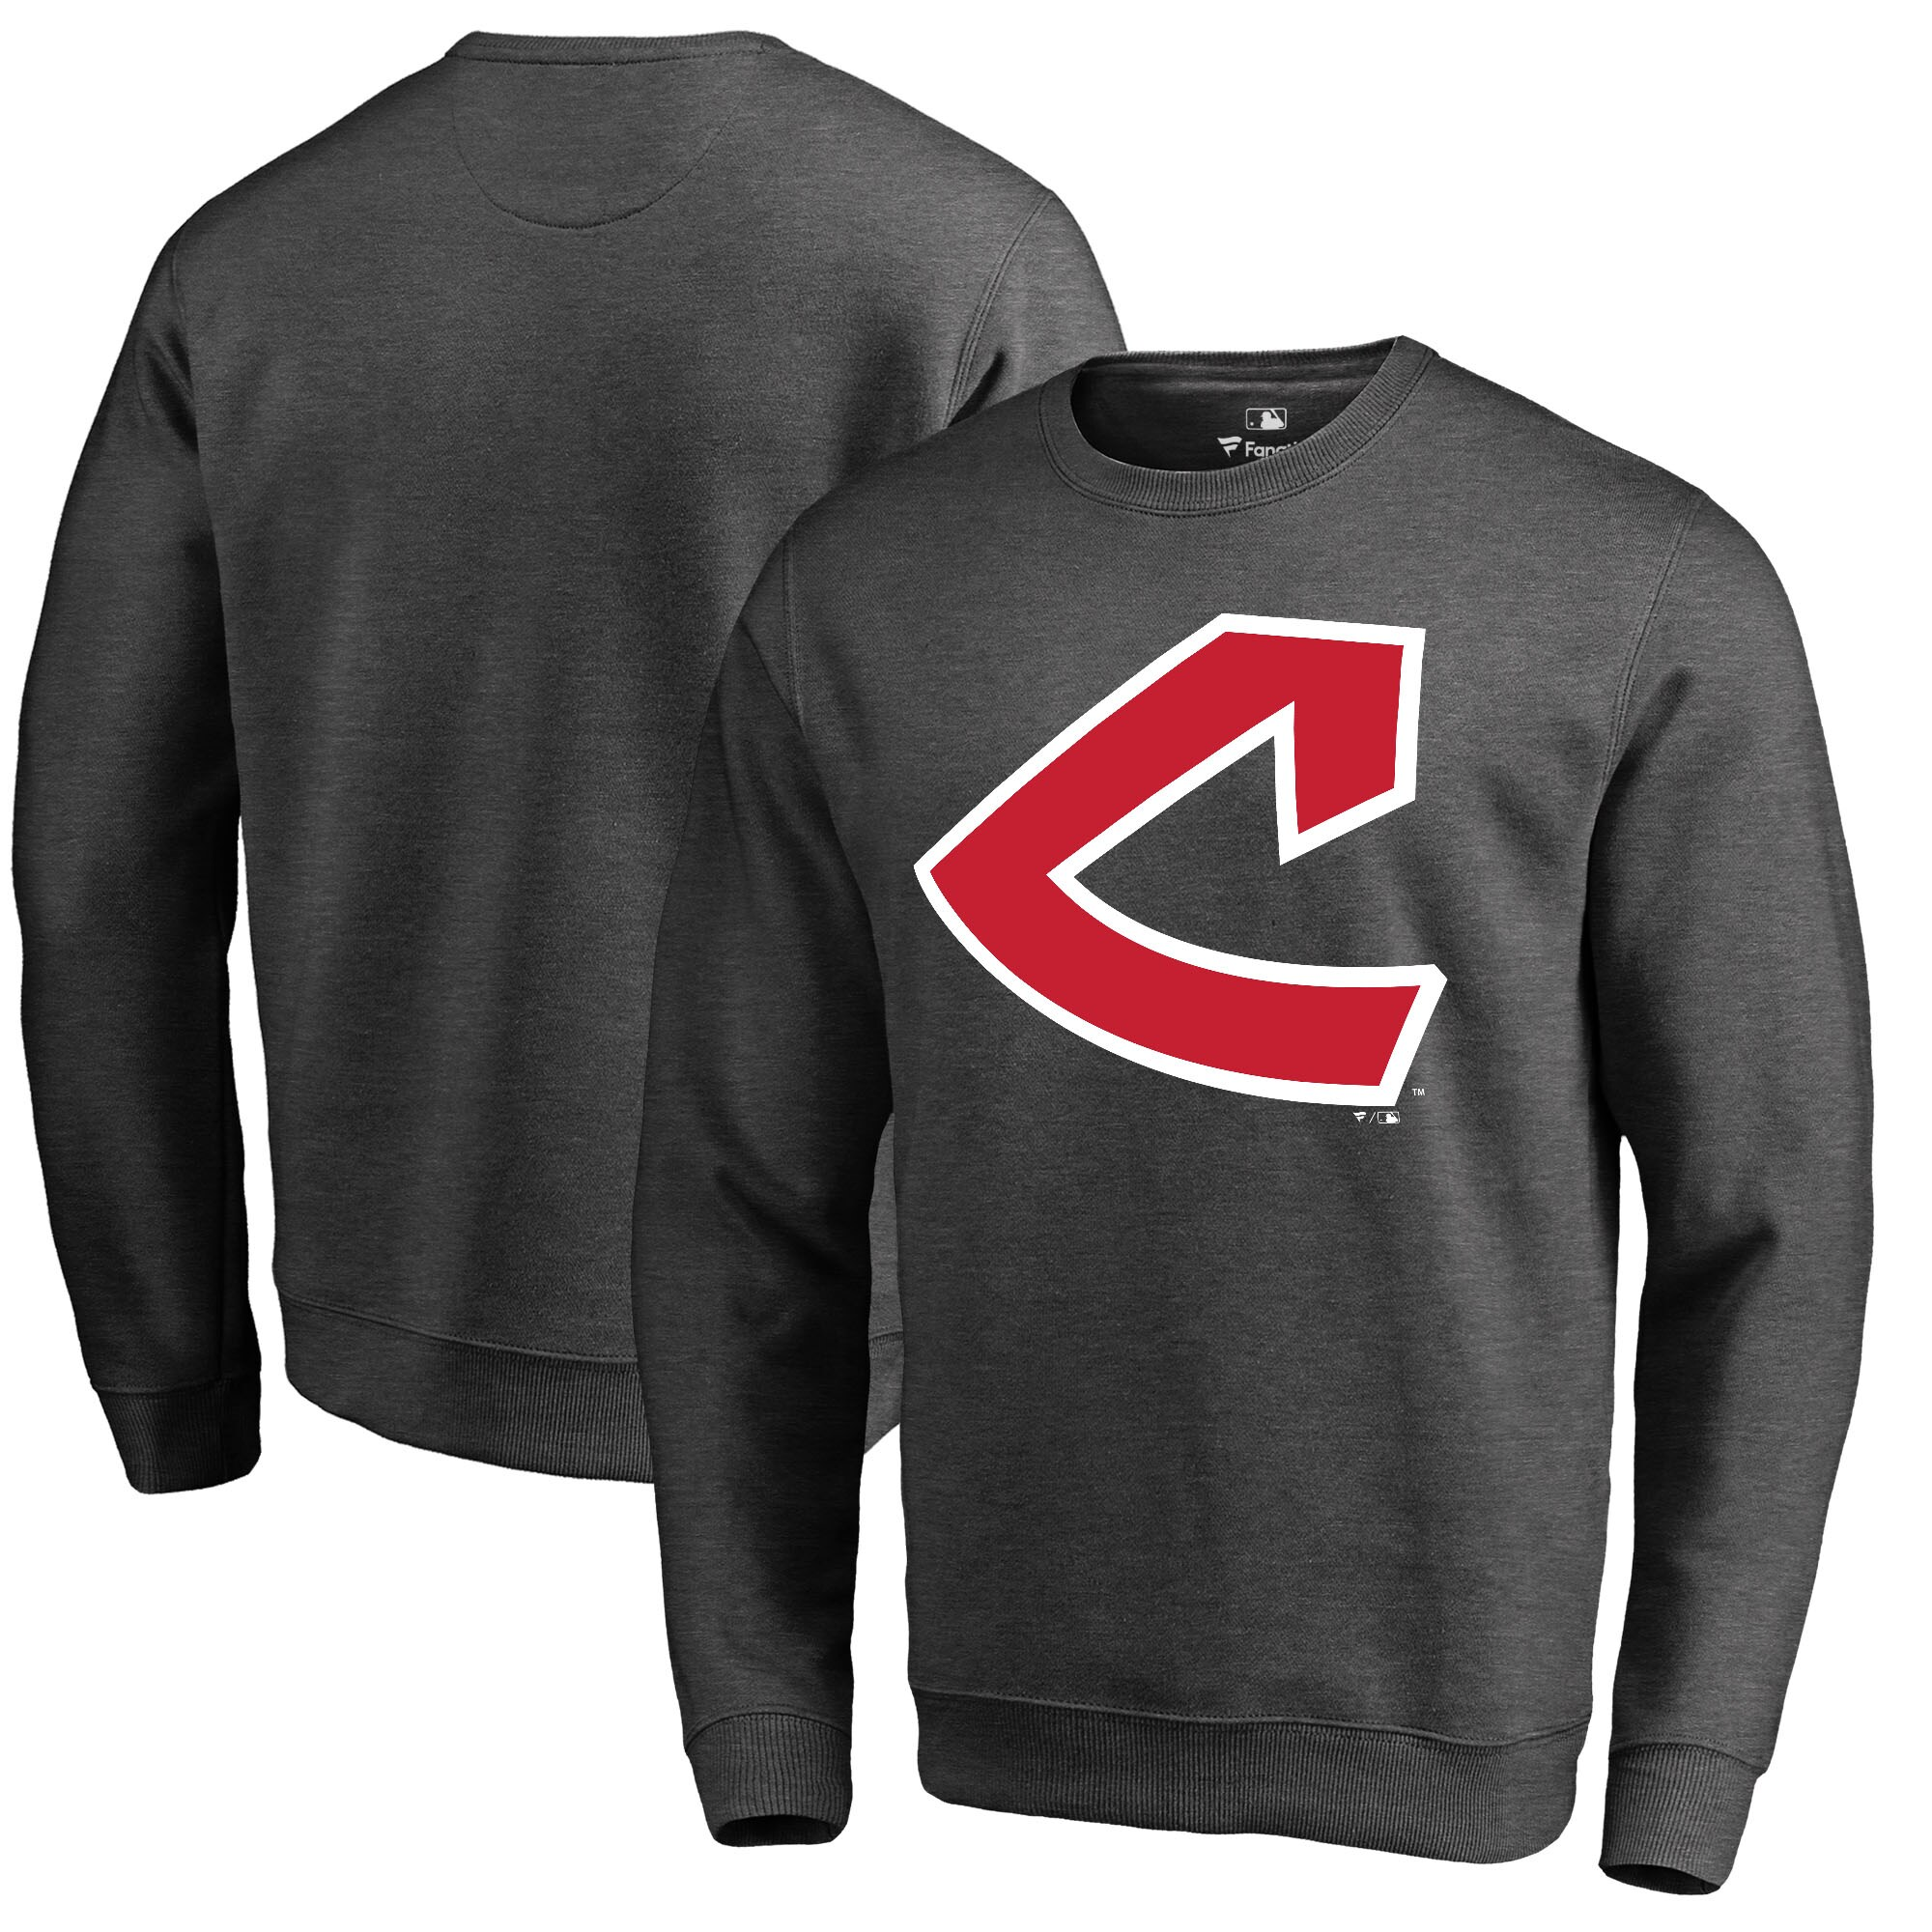 Cleveland Indians Fanatics Branded Cooperstown Collection Huntington Sweatshirt - Heathered Gray